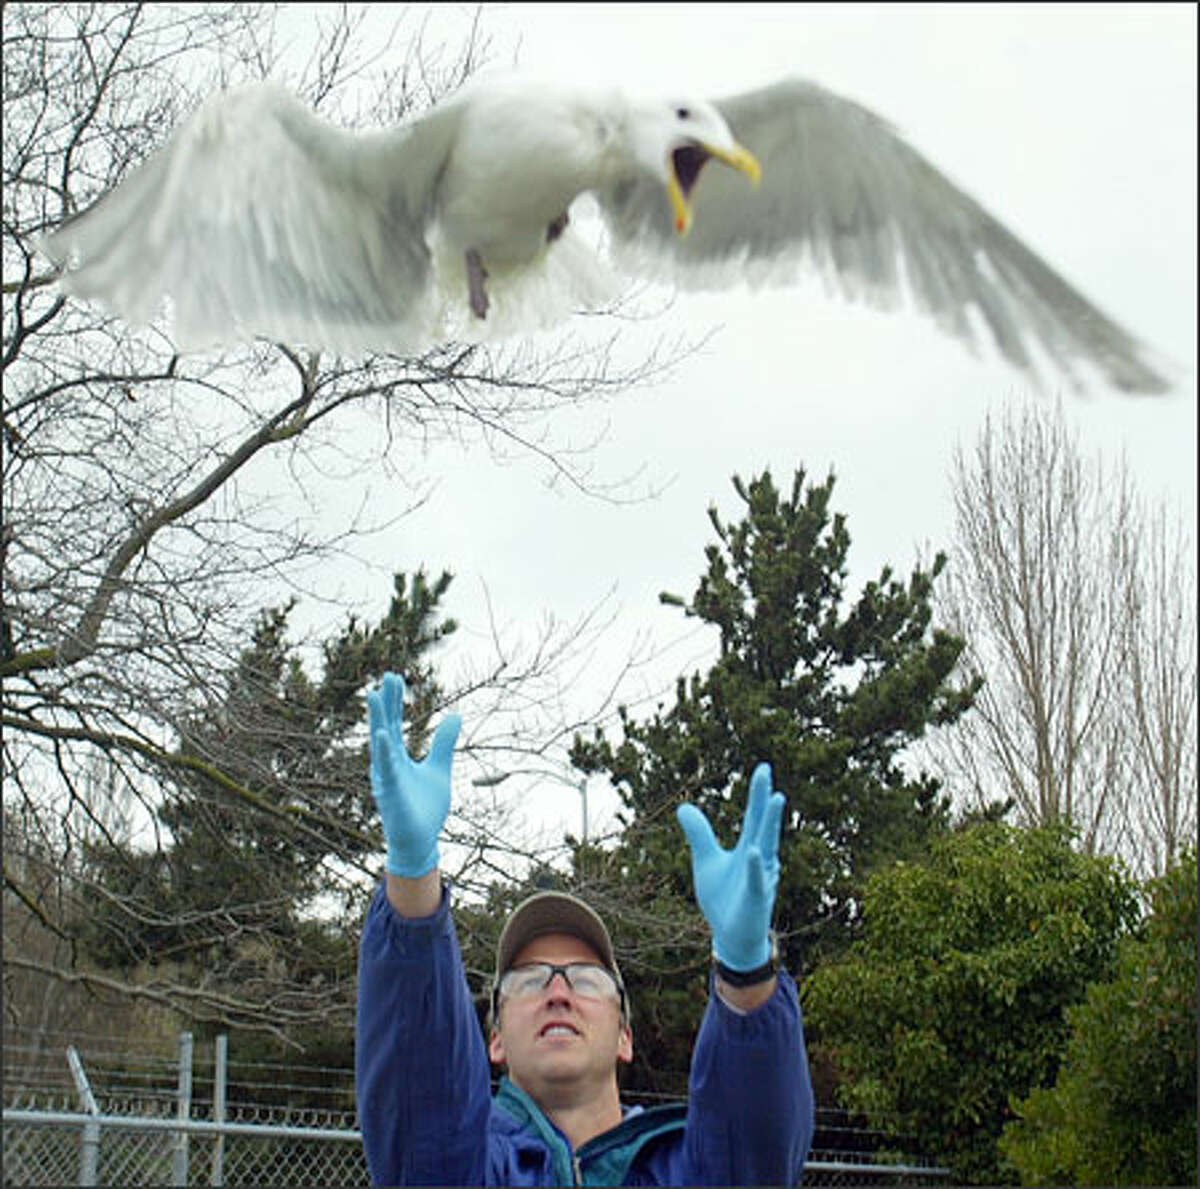 Joseph Gaydos, regional director of the SeaDoc Society, frees a sea gull captured off the Elliott Bay Marina to be examined for research. The society is conducting a regionwide study to learn more about marine wildlife and its role, if any, in the transmission of the diseases Cryptospiridum parvum and Giardia lamblia.